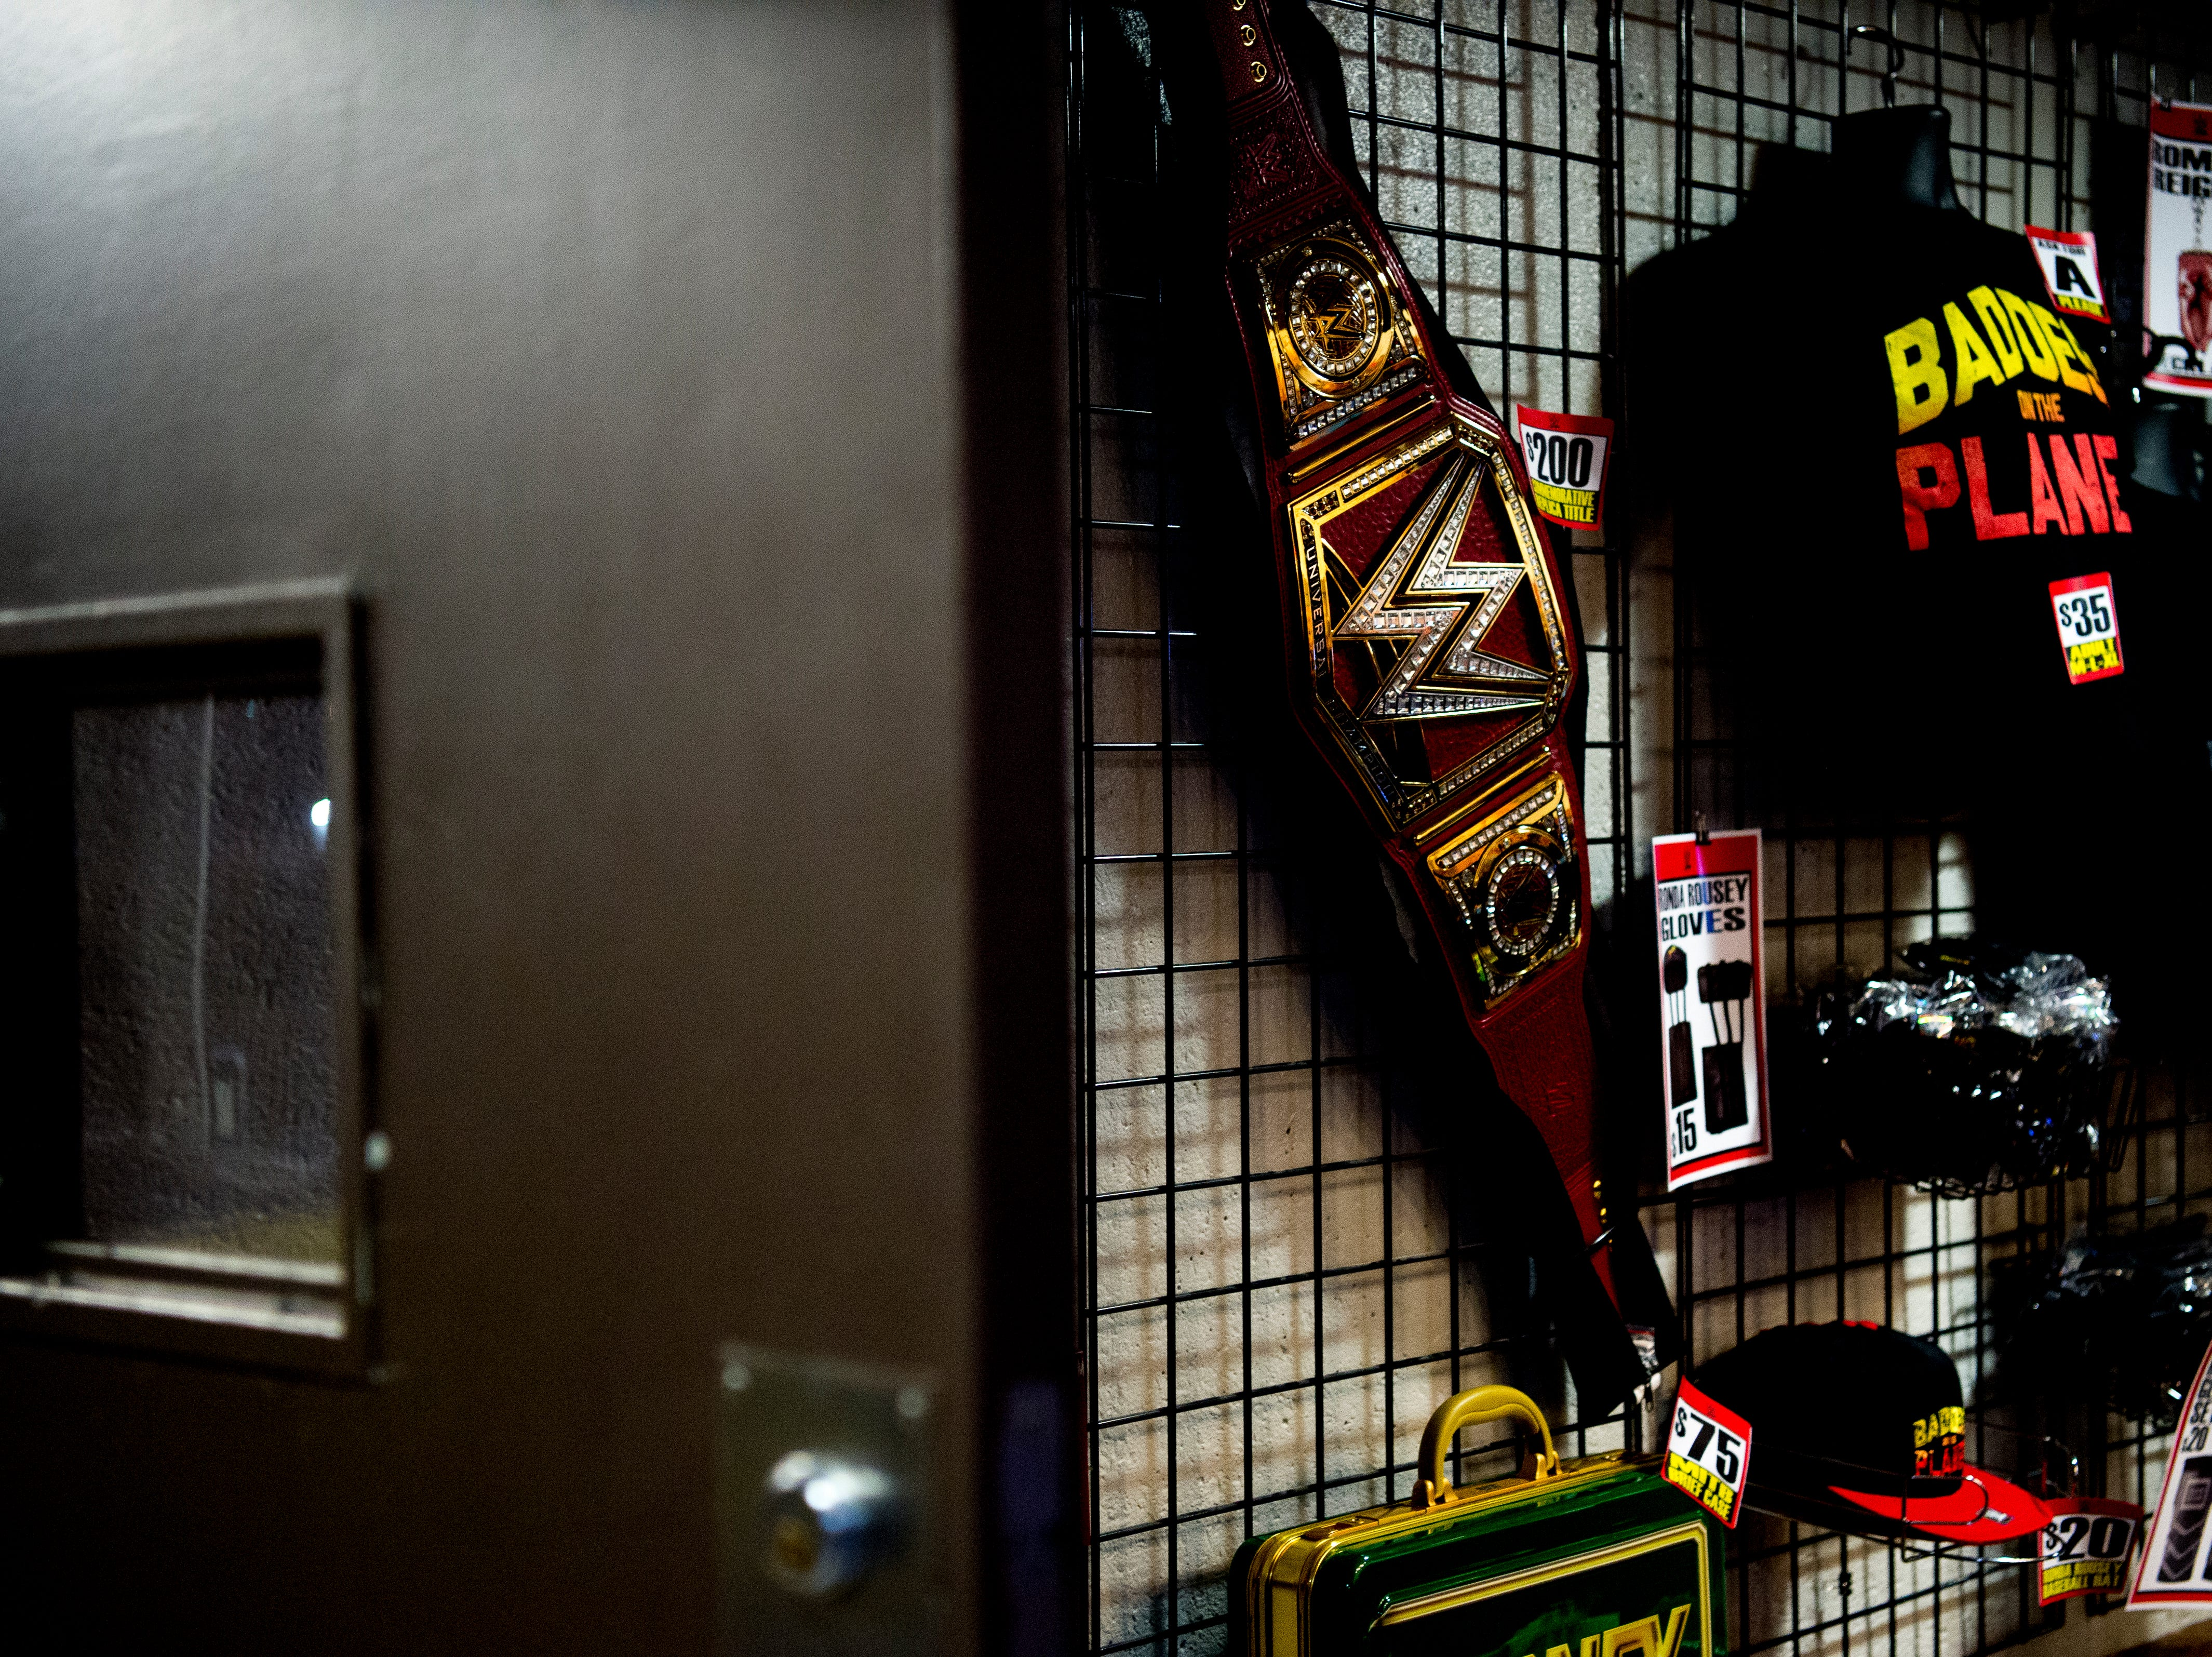 WWE paraphernalia for sale during a WWE Live performance at the Knoxville Civic Coliseum in Knoxville, Tennessee on Saturday, January 12, 2019. *KNOXVILLE NEWS SENTINEL USE ONLY*